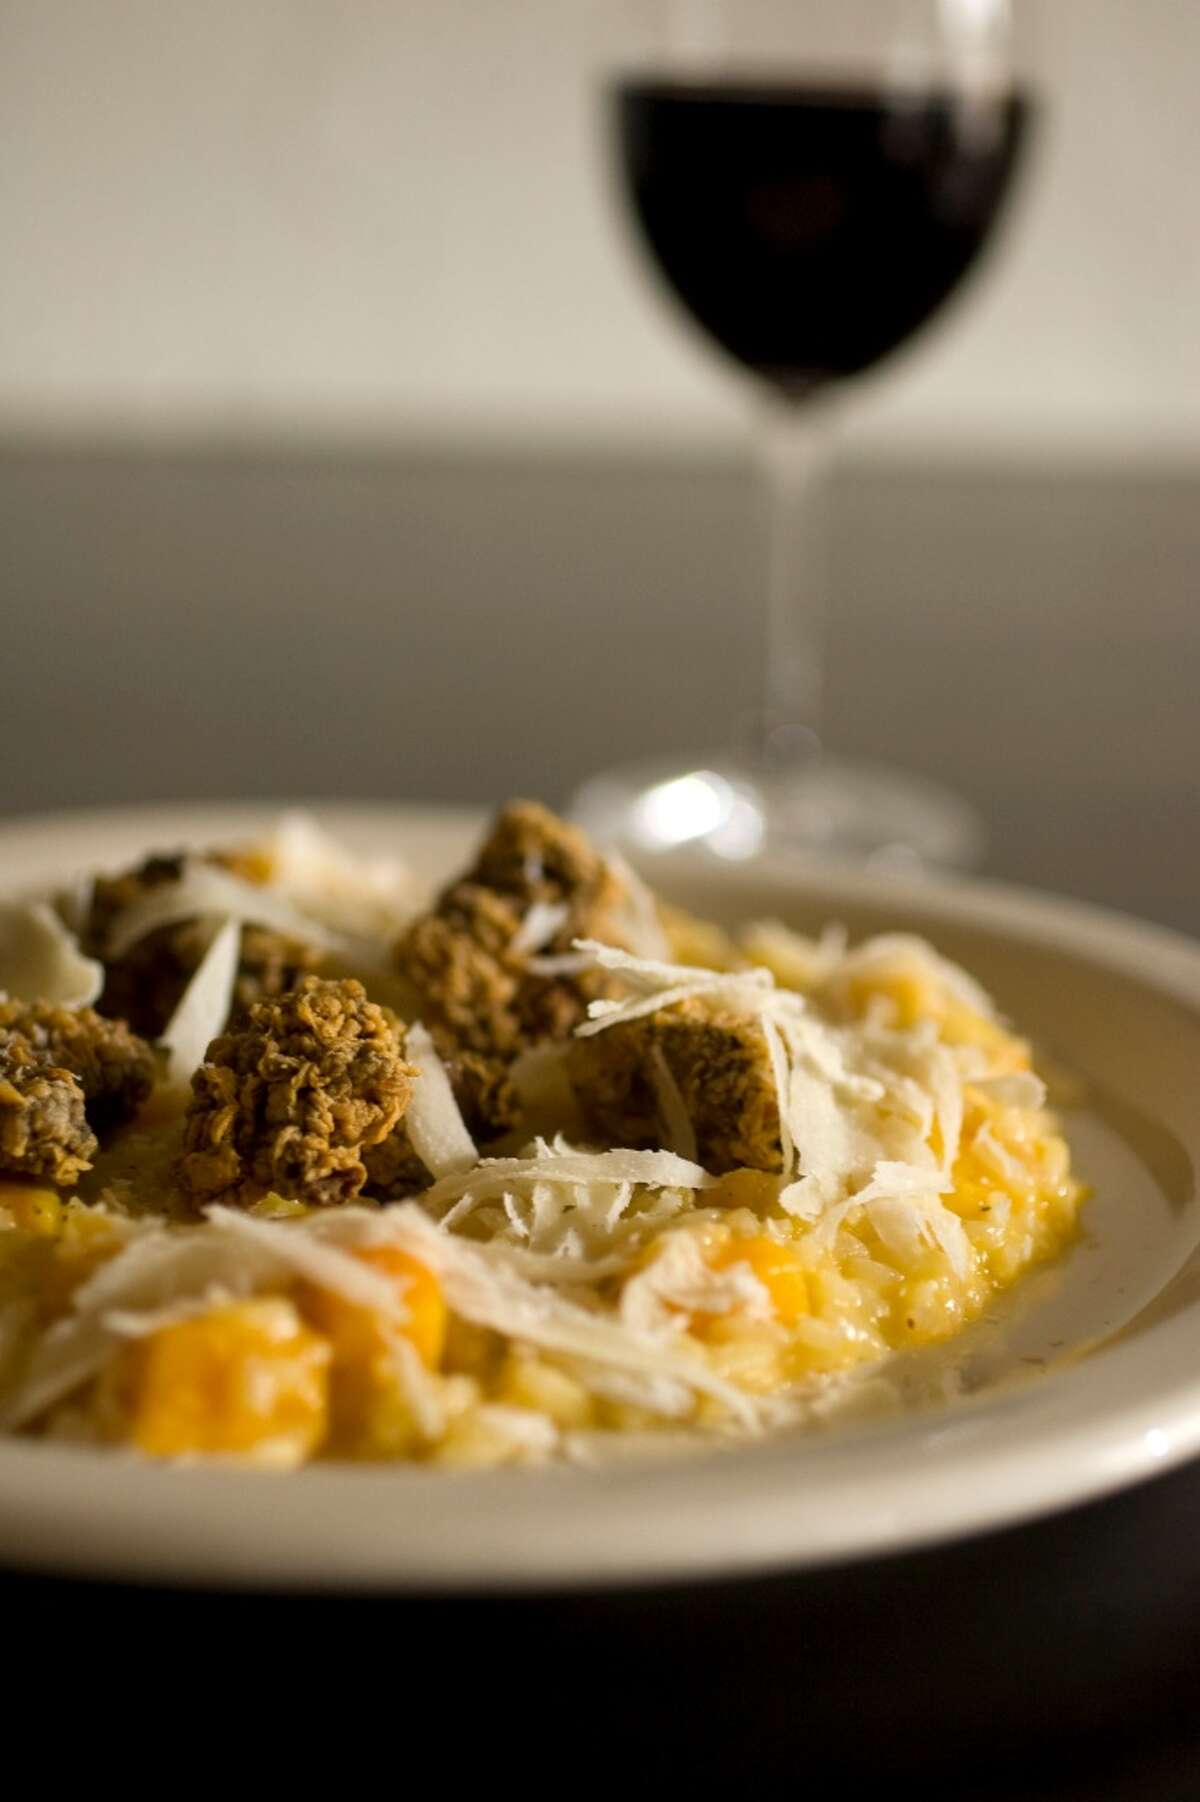 Butternut squash risotto with fried chicken livers at Vinoteca Poscol.